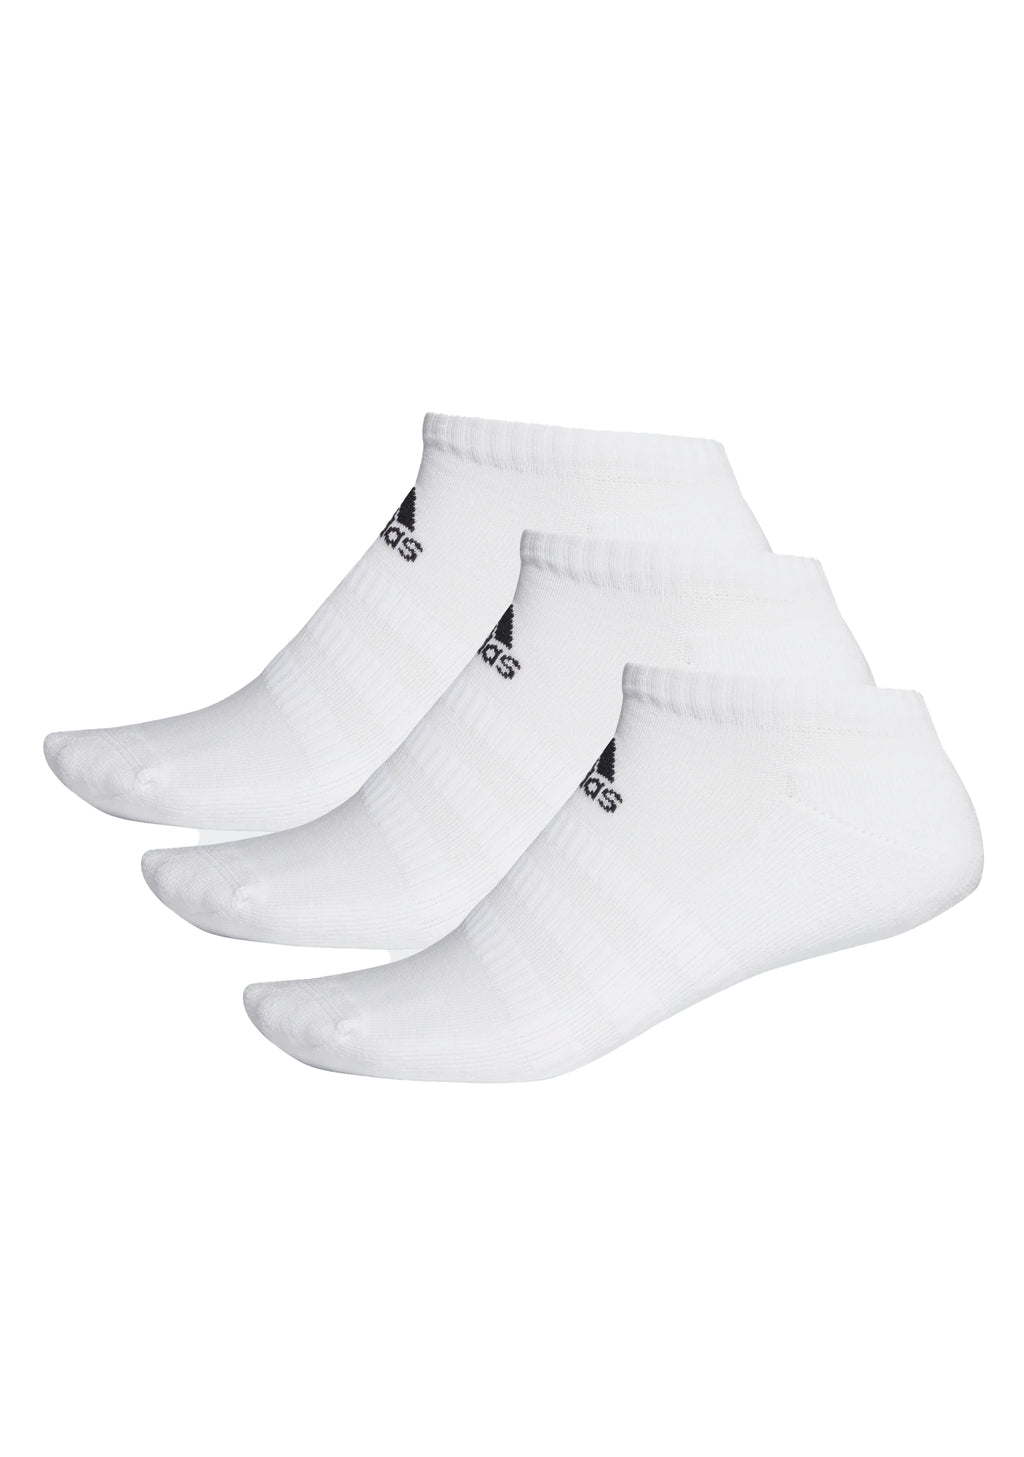 ADIDAS CUSHIONED LOW-CUT 3 PACK WHITE <br> DZ9384